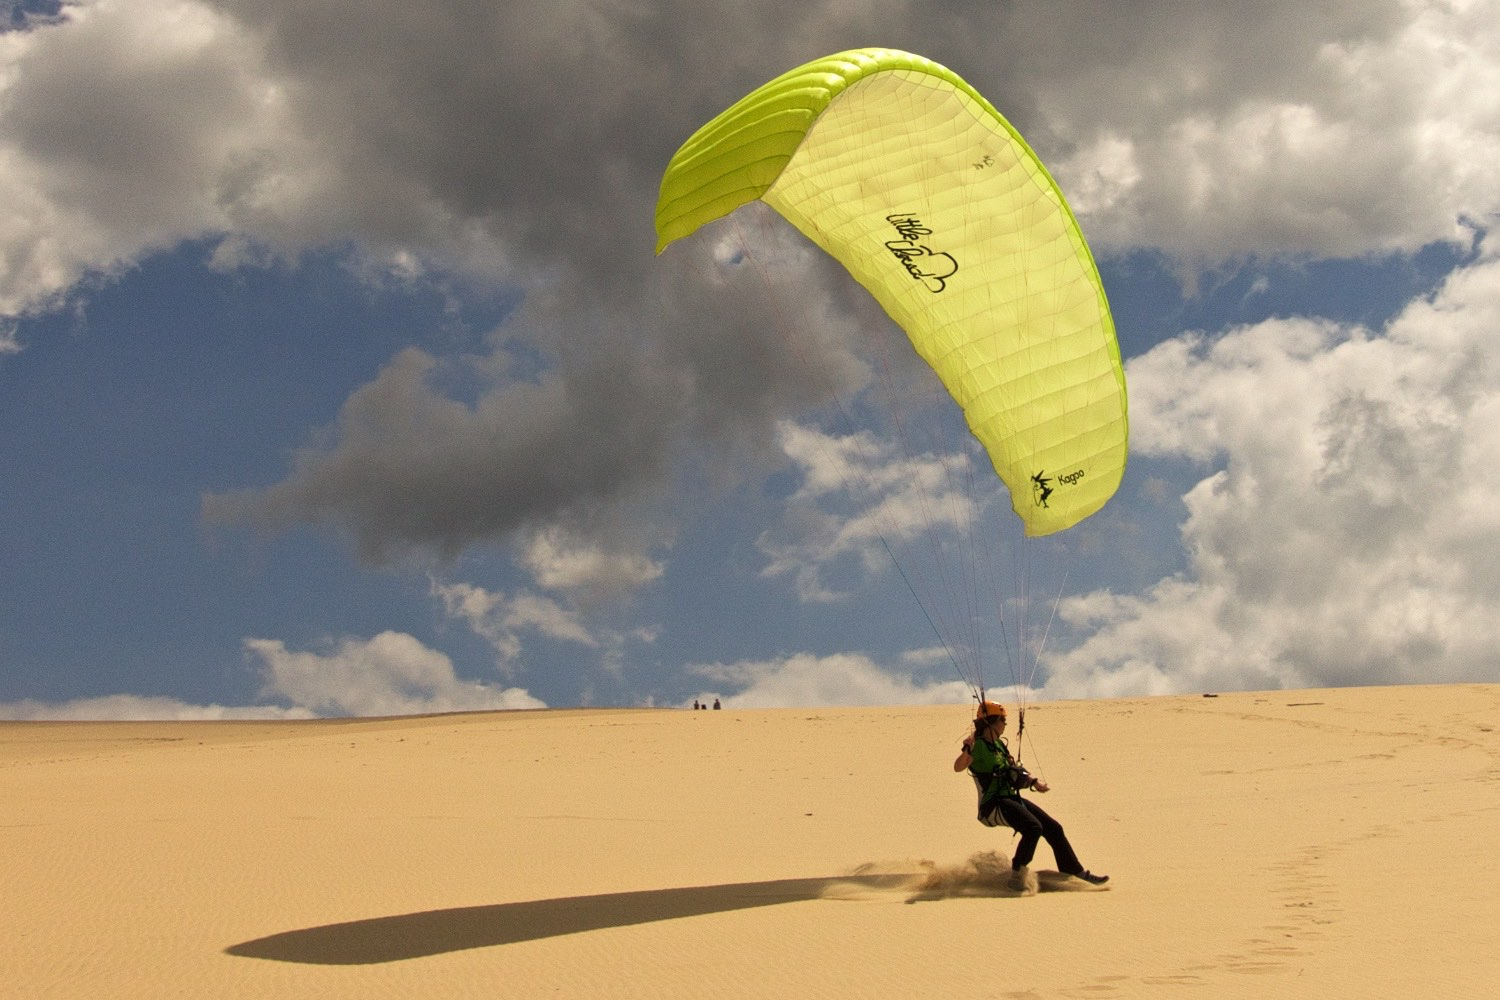 Skimming the sand, paragliding at Dune de Pyla